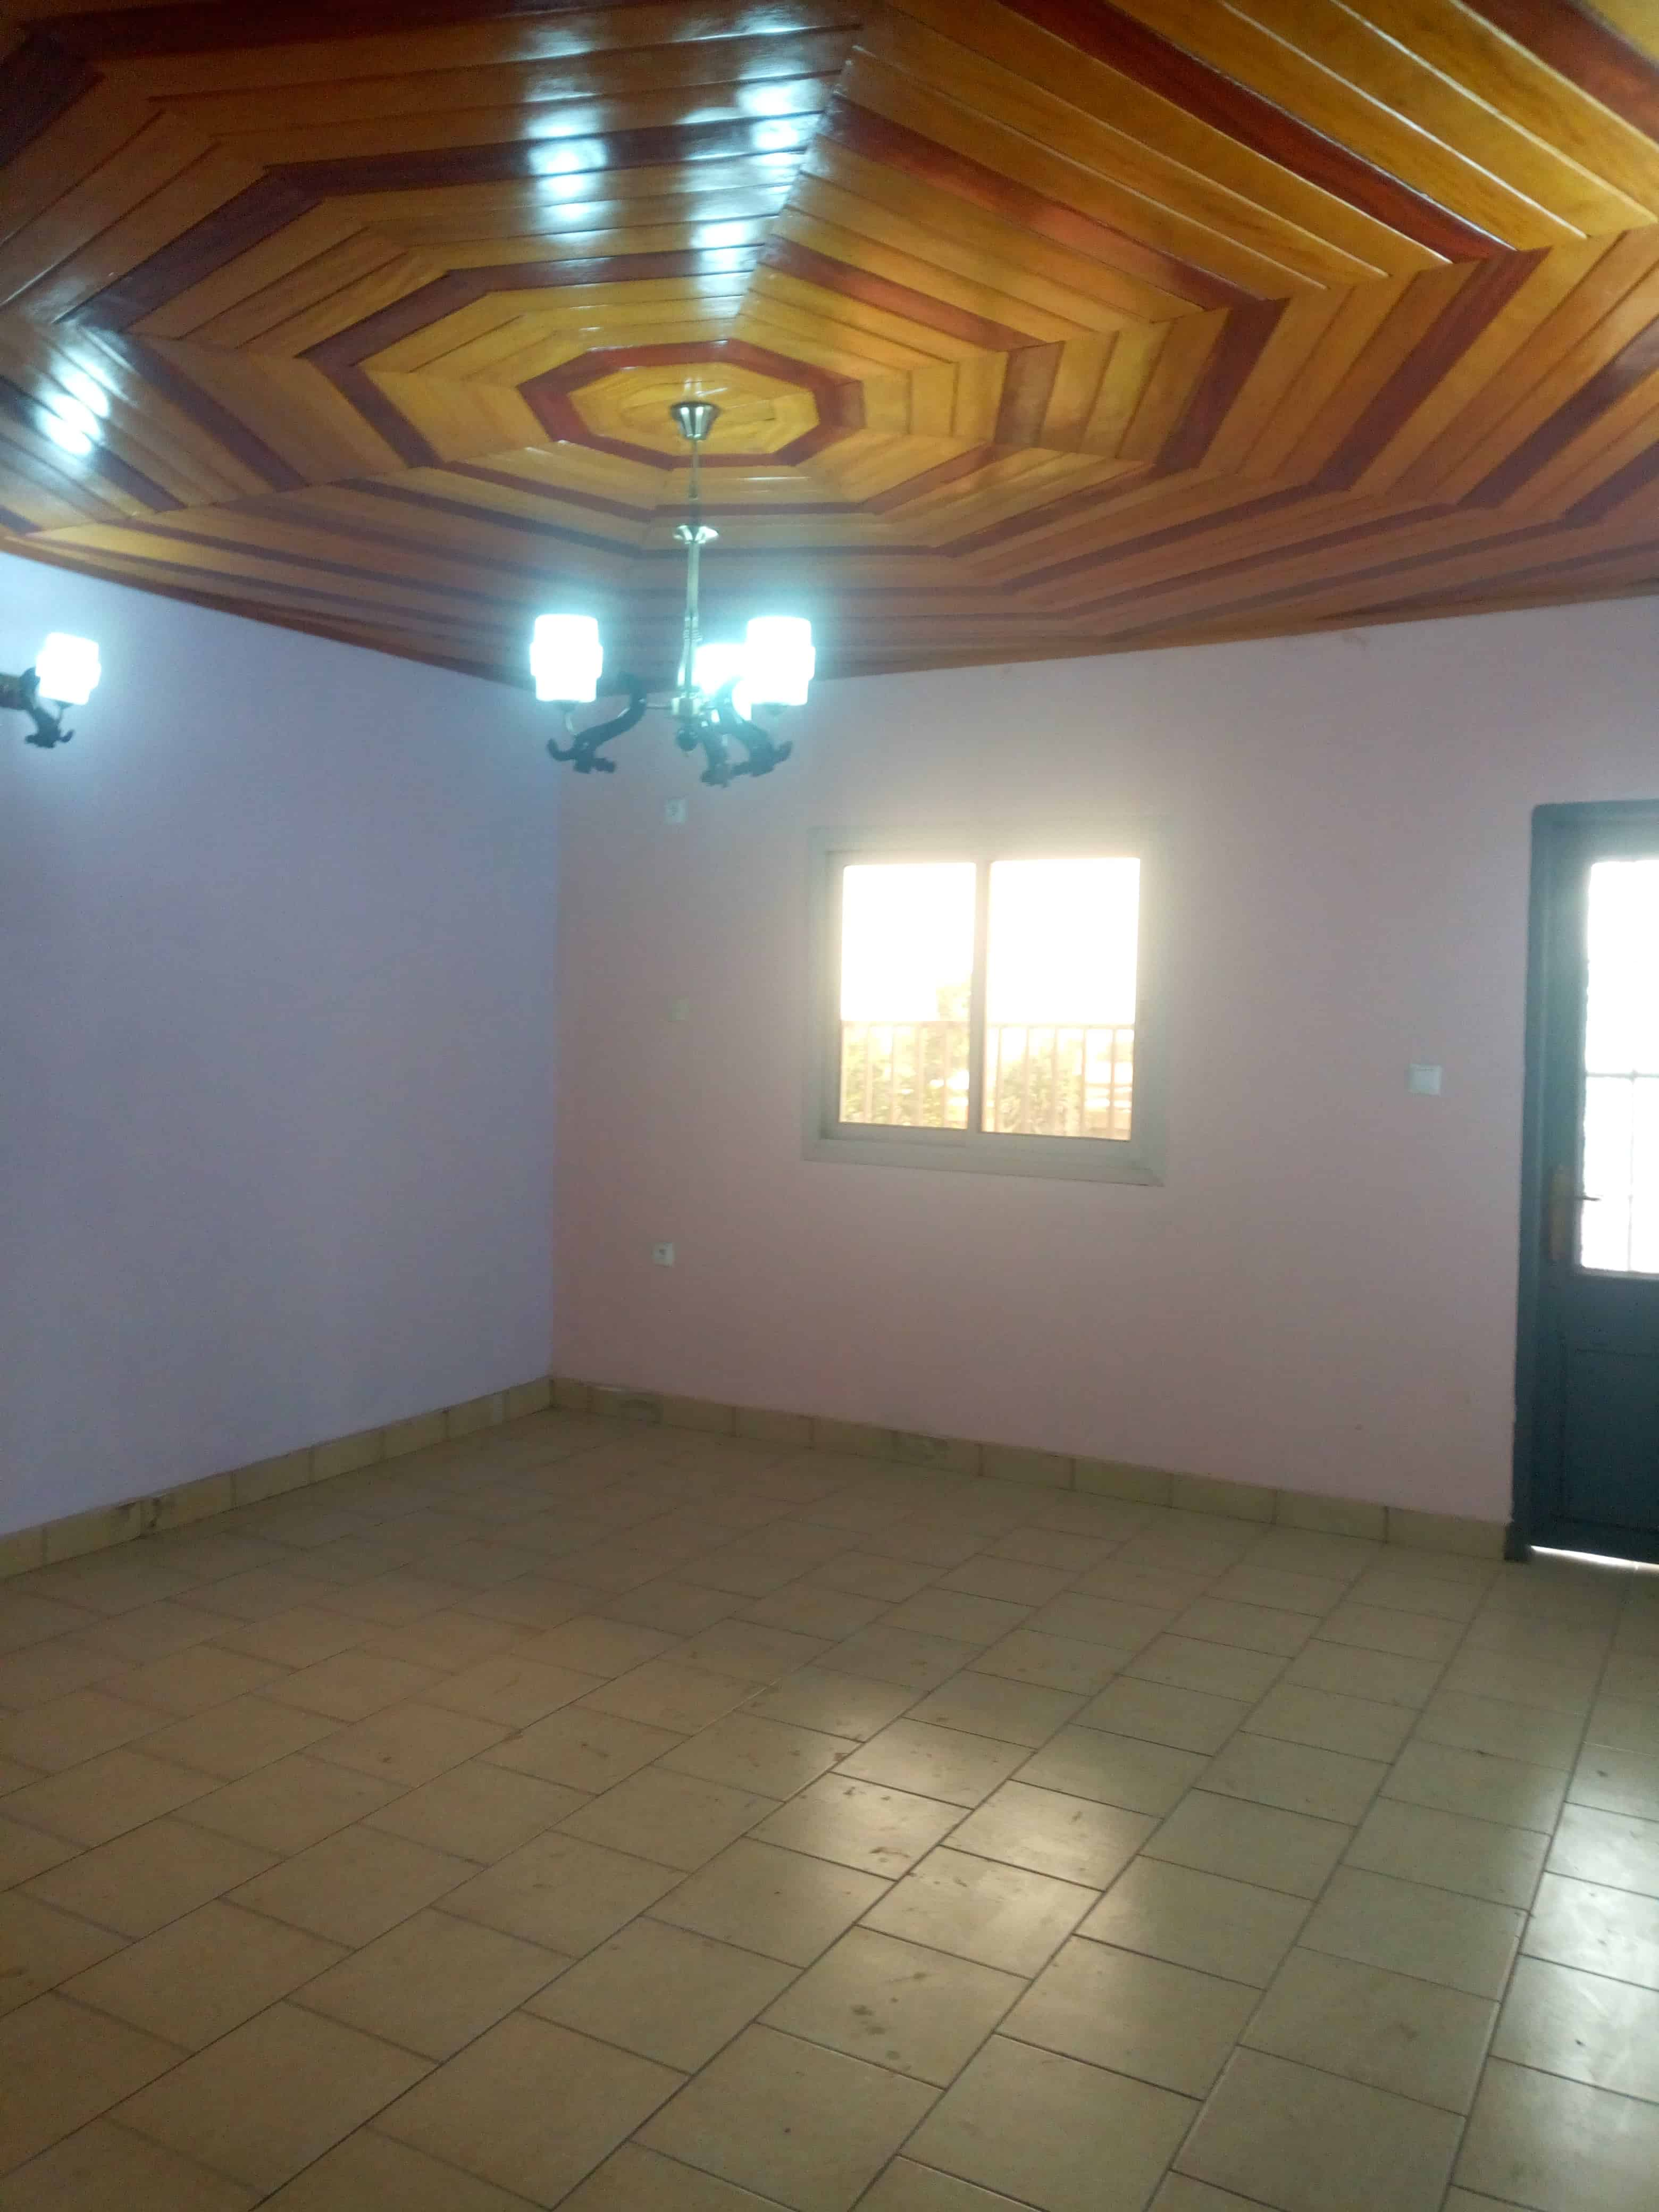 Apartment to rent - Douala, Makepe, Rond pauleng - 1 living room(s), 1 bedroom(s), 1 bathroom(s) - 80 000 FCFA / month